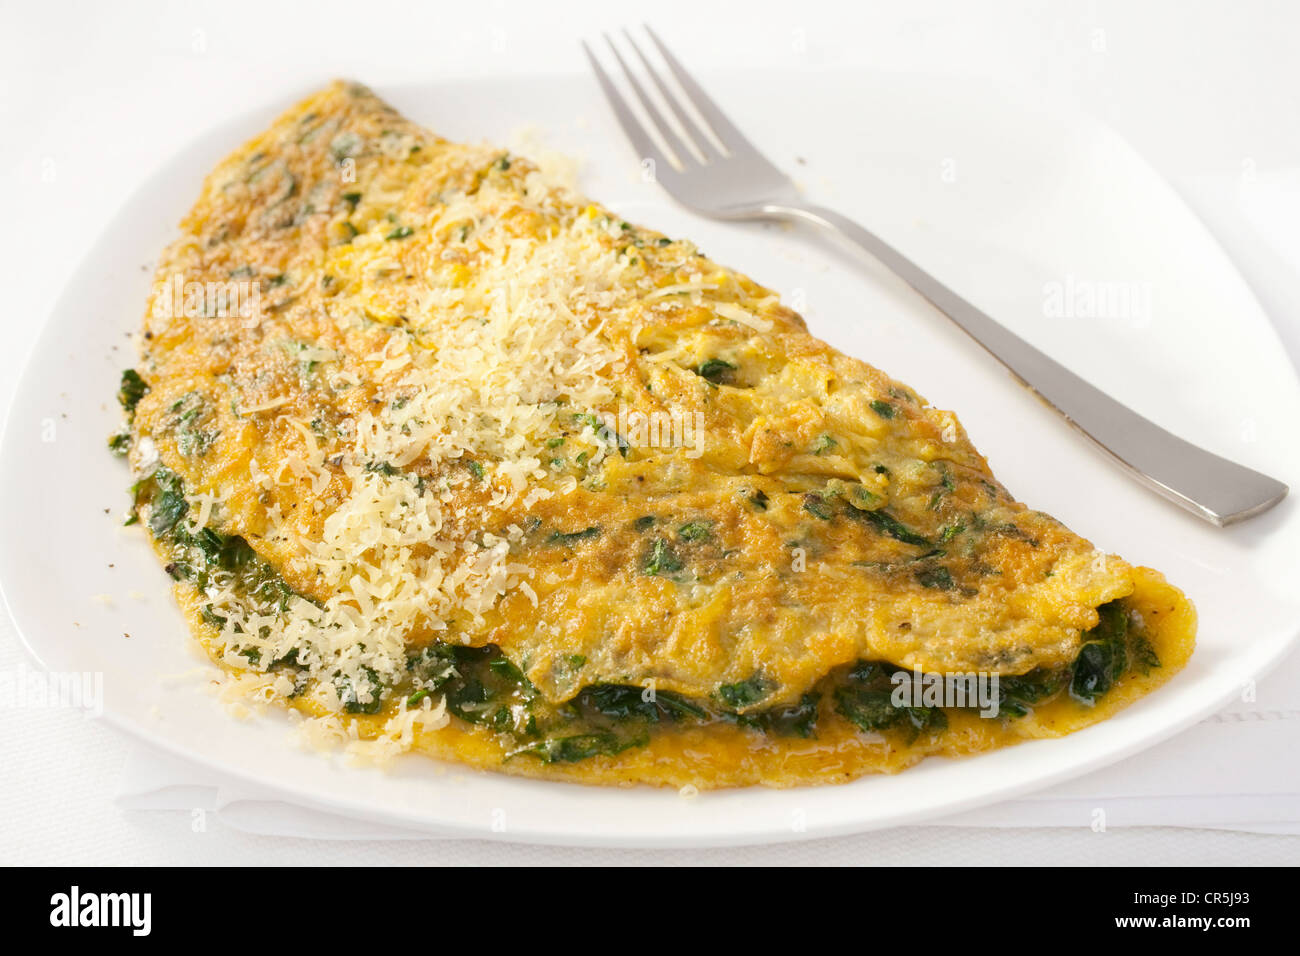 A French omelet cooked with spinach and parmesan, sprinkled with parmesan. - Stock Image